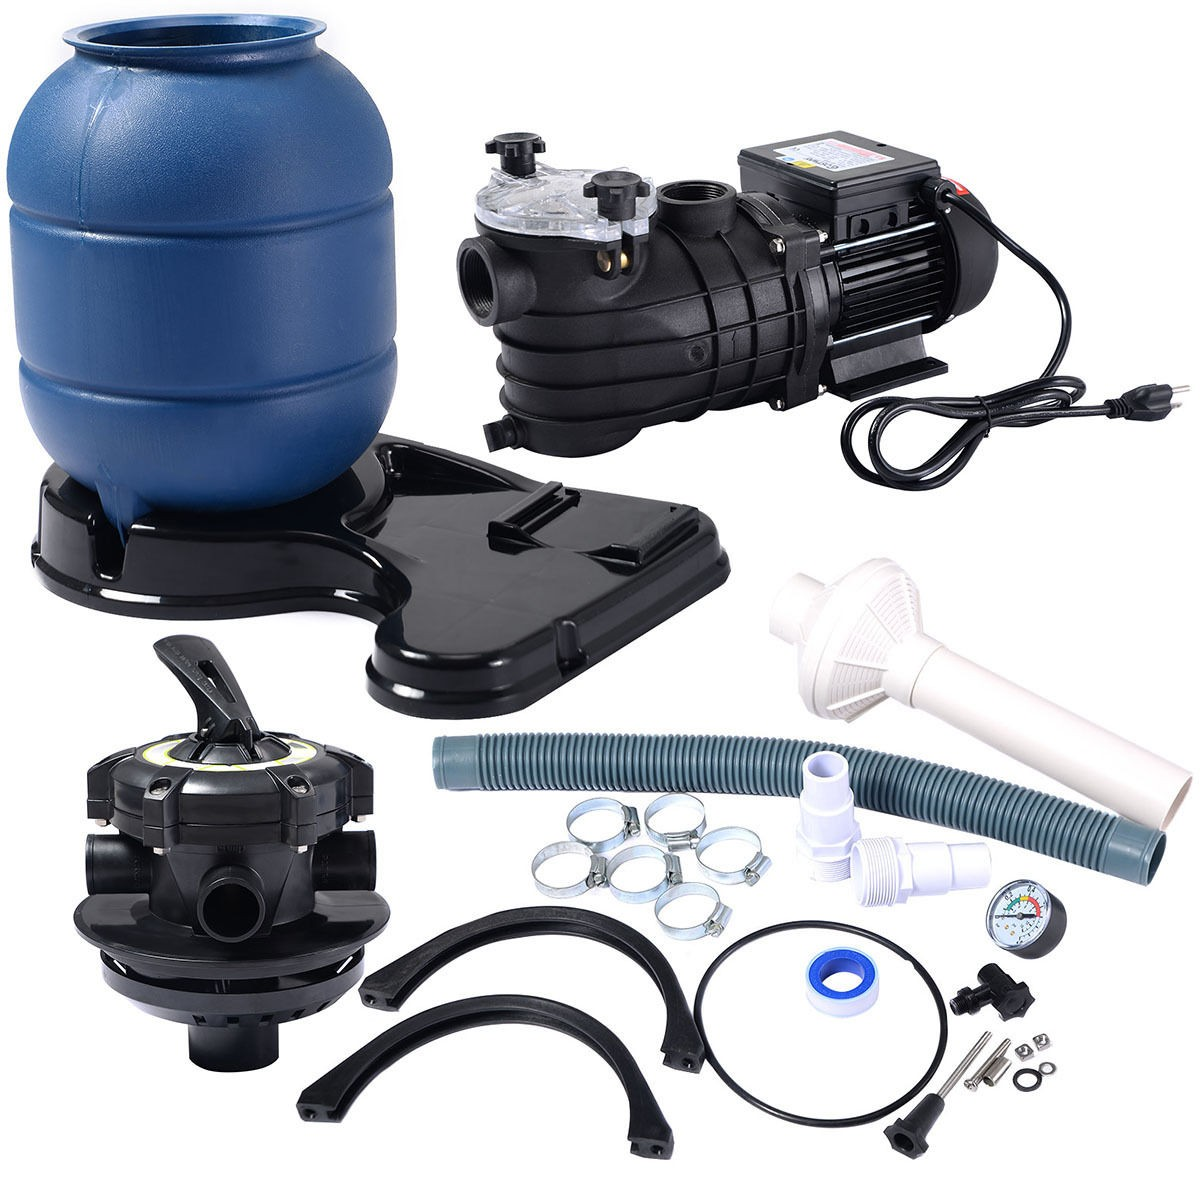 pro 2450gph 13 sand filter above ground swimming spa water pool pump 10000gal ebay. Black Bedroom Furniture Sets. Home Design Ideas